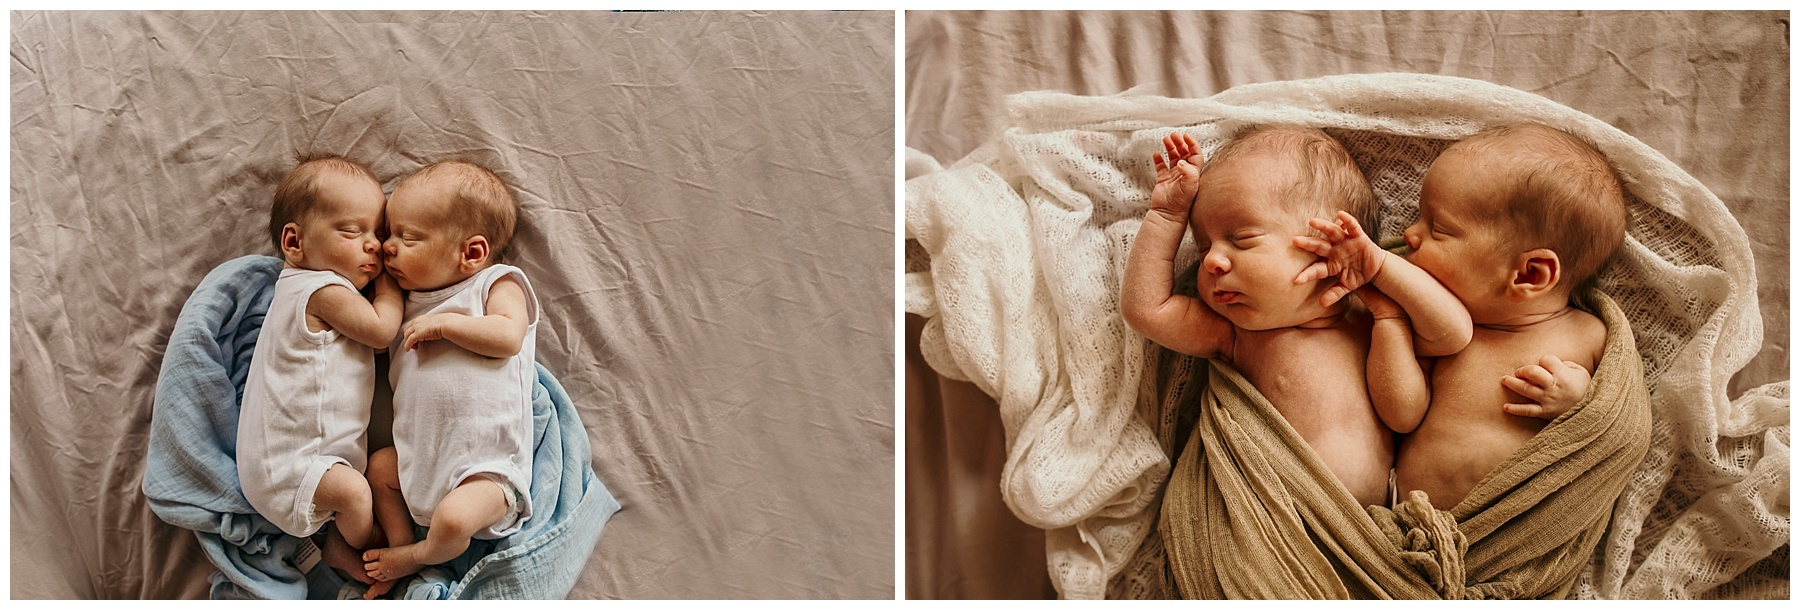 inverloch newborn photographer - twins - details